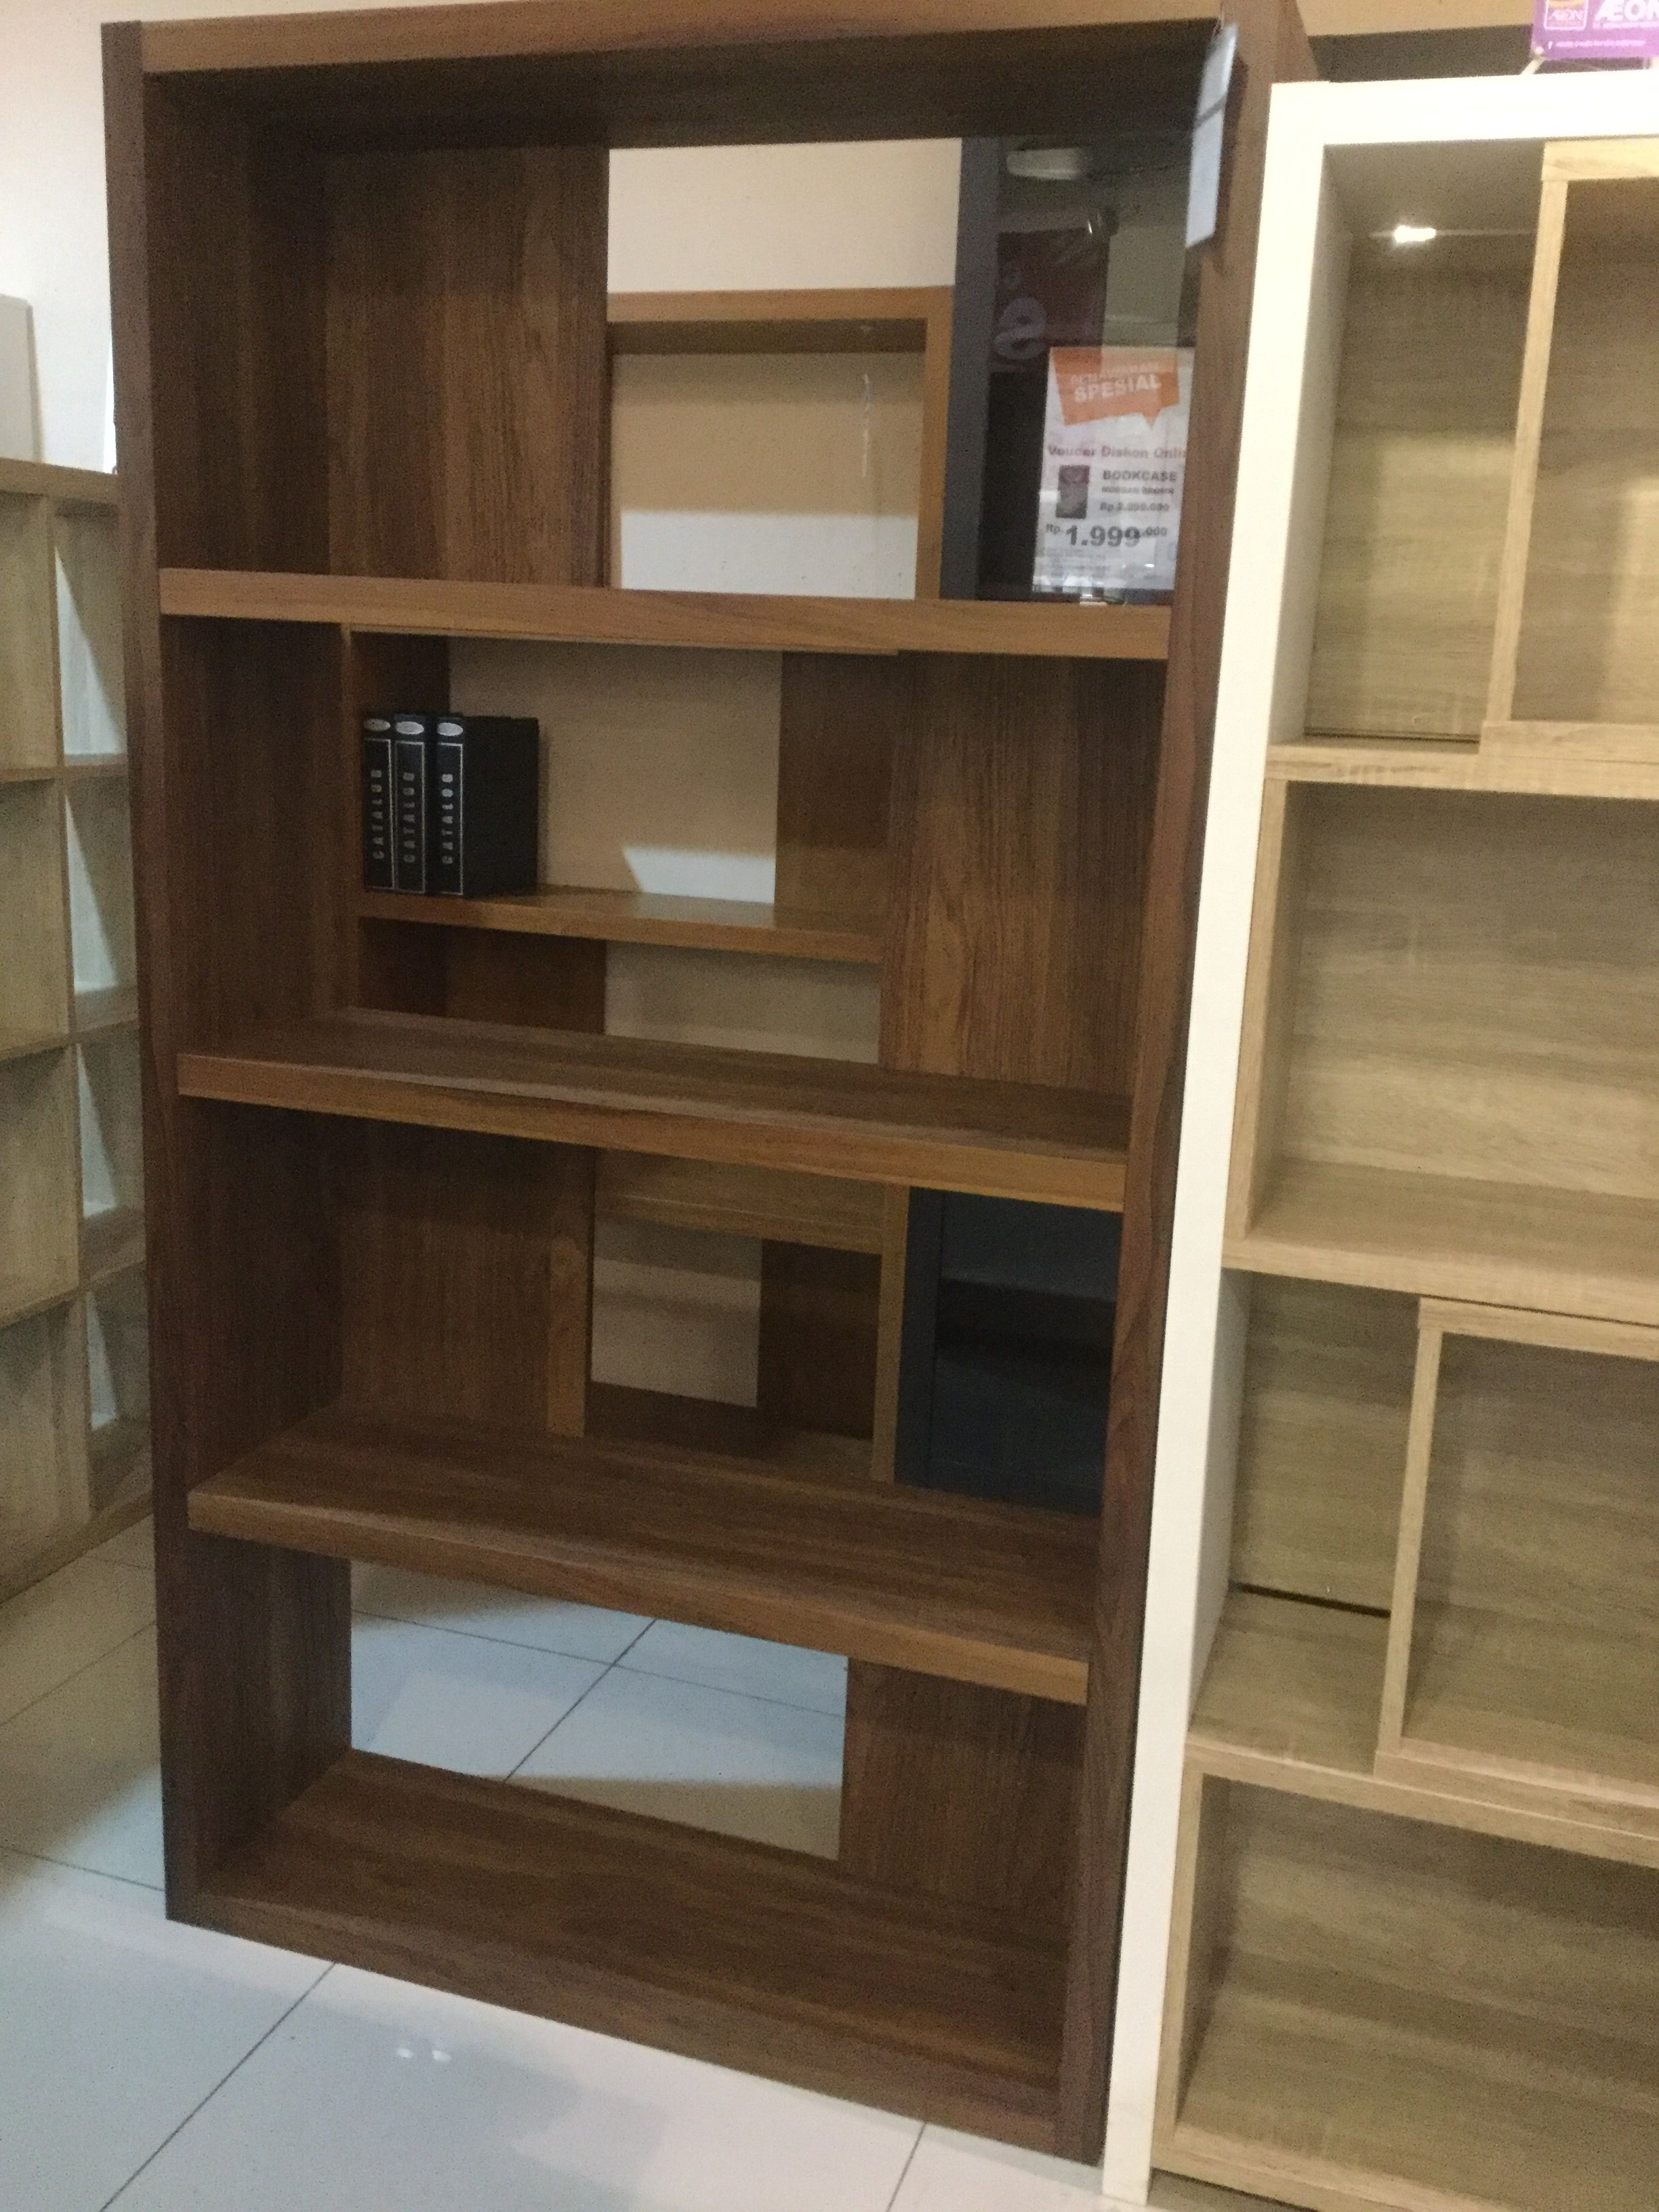 informa lemari floating shelf wall shelves adelaide airing cupboard storage standard base cabinet height garage cabinets and ikea cube shelving unit single shoe rack closet layout